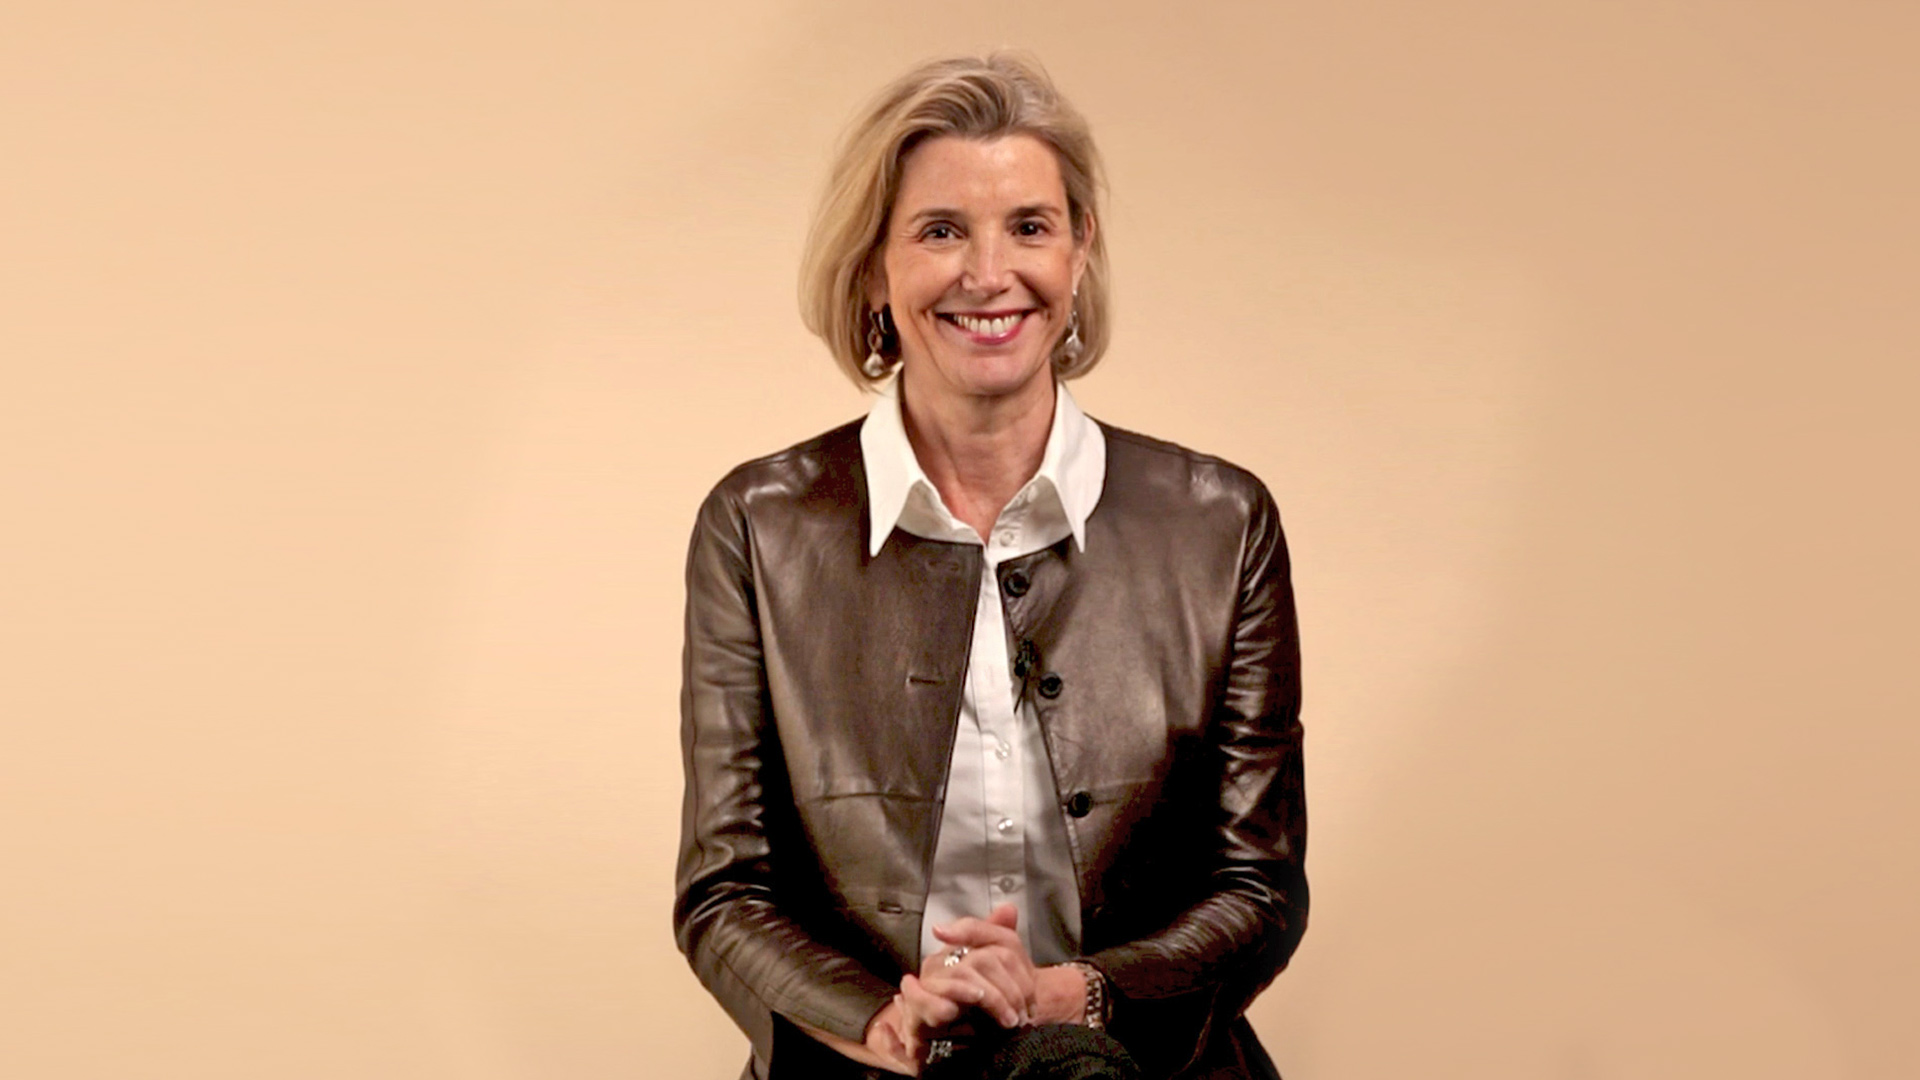 A freeze frame of CEO Sallie Krawcheck, smiling into the camera and wearing a brown leather jacket. Photo.